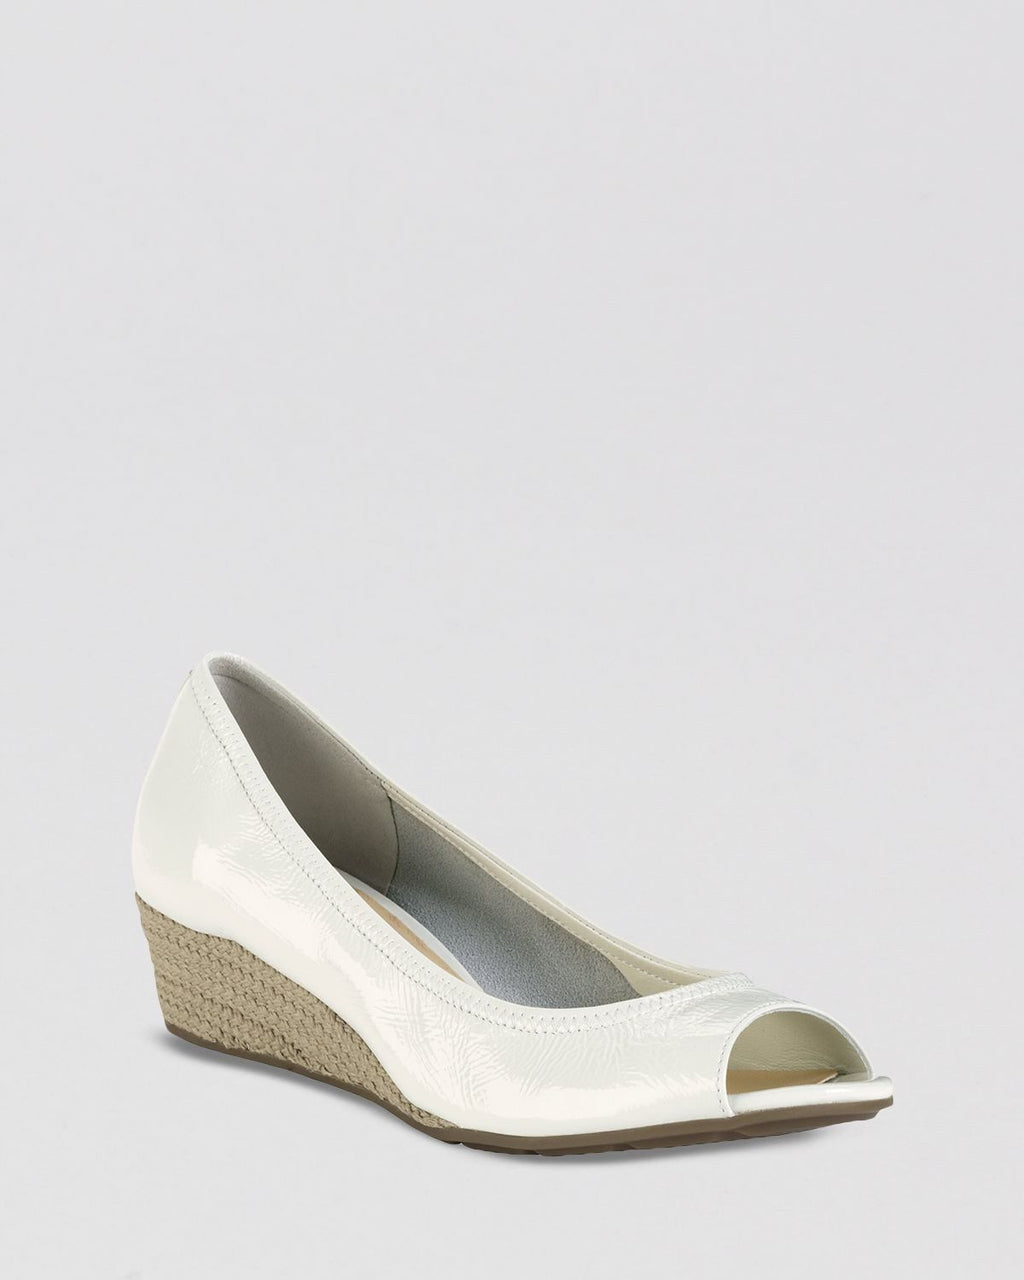 999b98a12d32 Cole Haan Open Toe Wedge Pumps - Air Tali - Fashionbarn shop